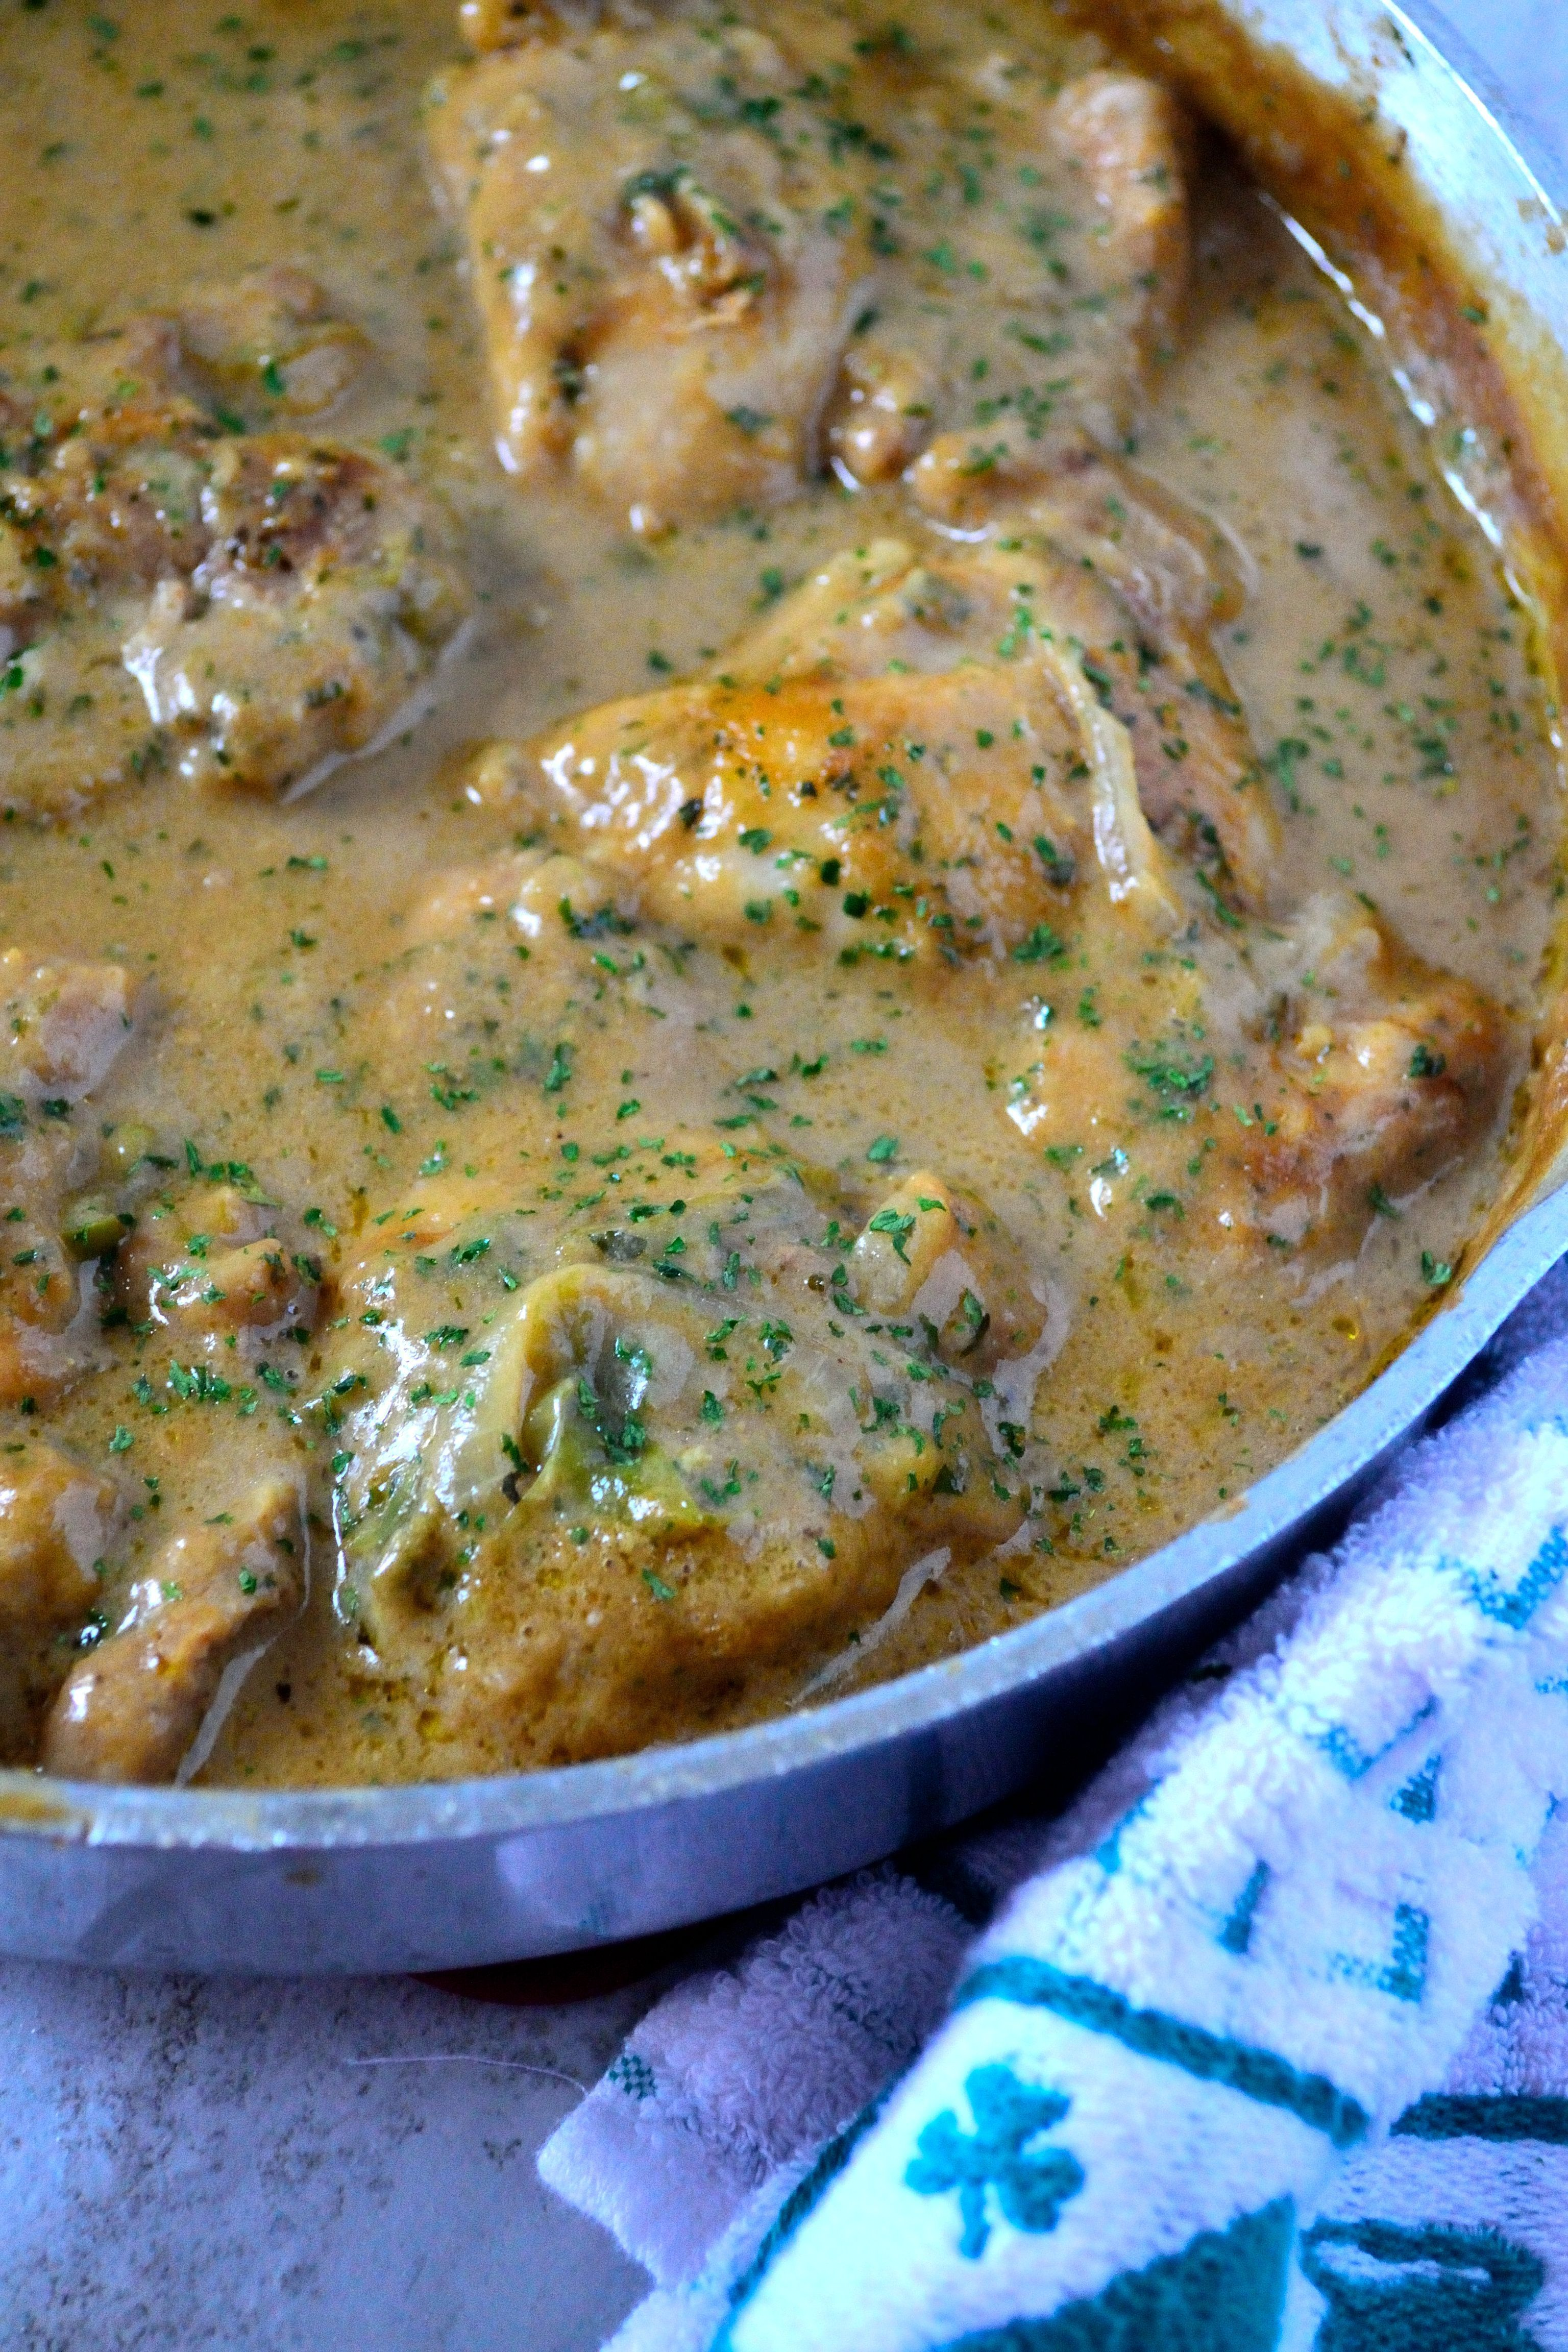 Smothered Chicken And Homemade Gravy Coop Can Cook Recipe Smothered Chicken Recipes Homemade Gravy Chicken Thights Recipes